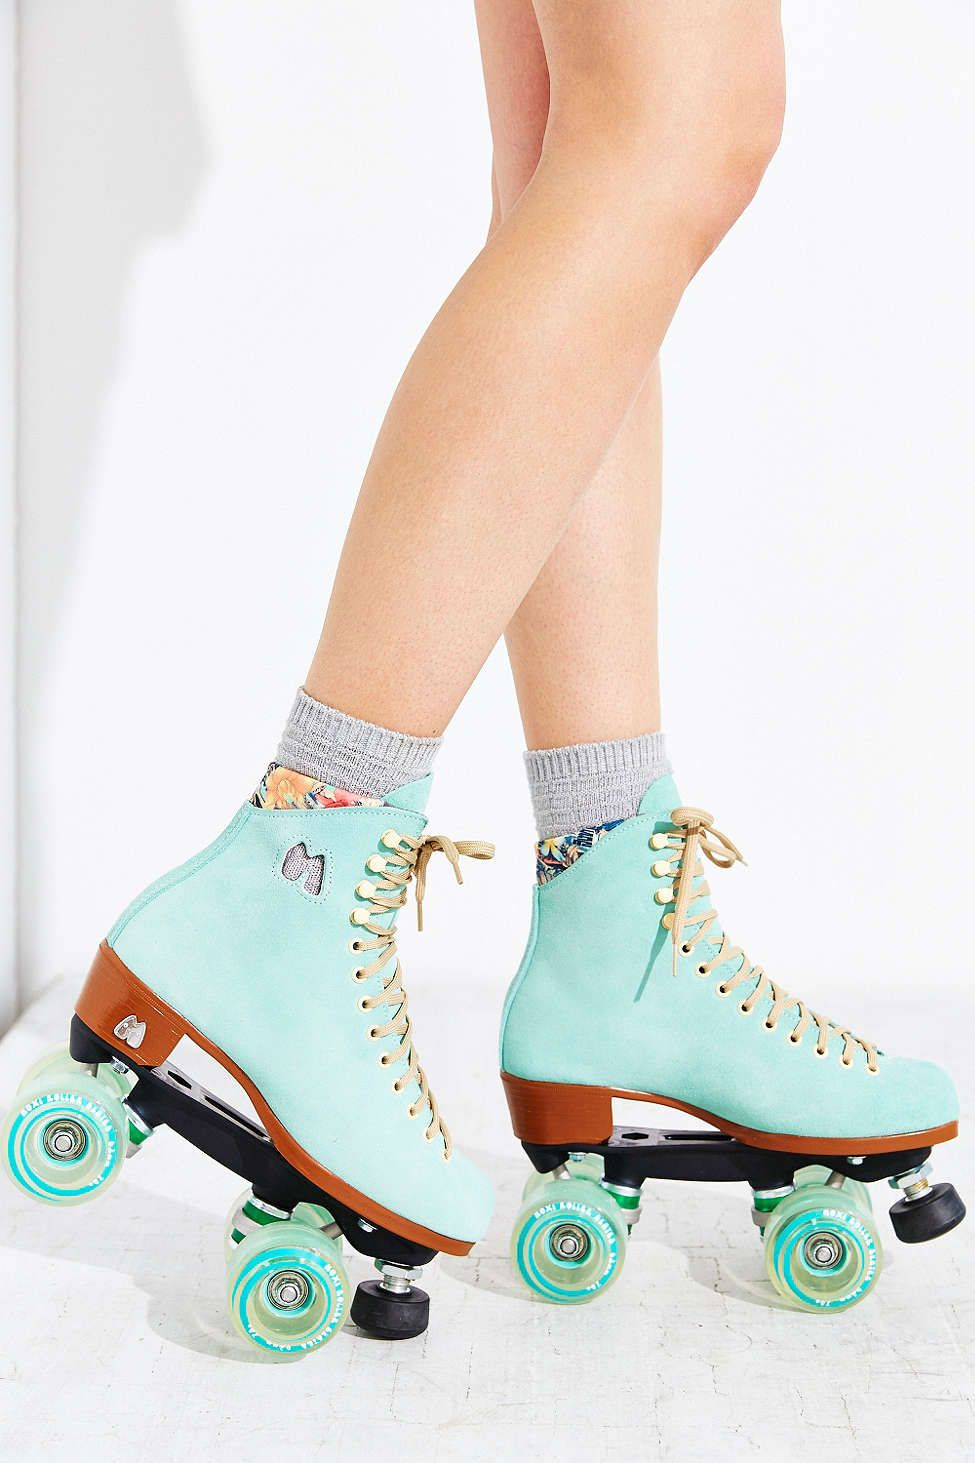 7a88901106c Moxi Lolly Roller Skates | Products I Love - Roller skating, Ice ...